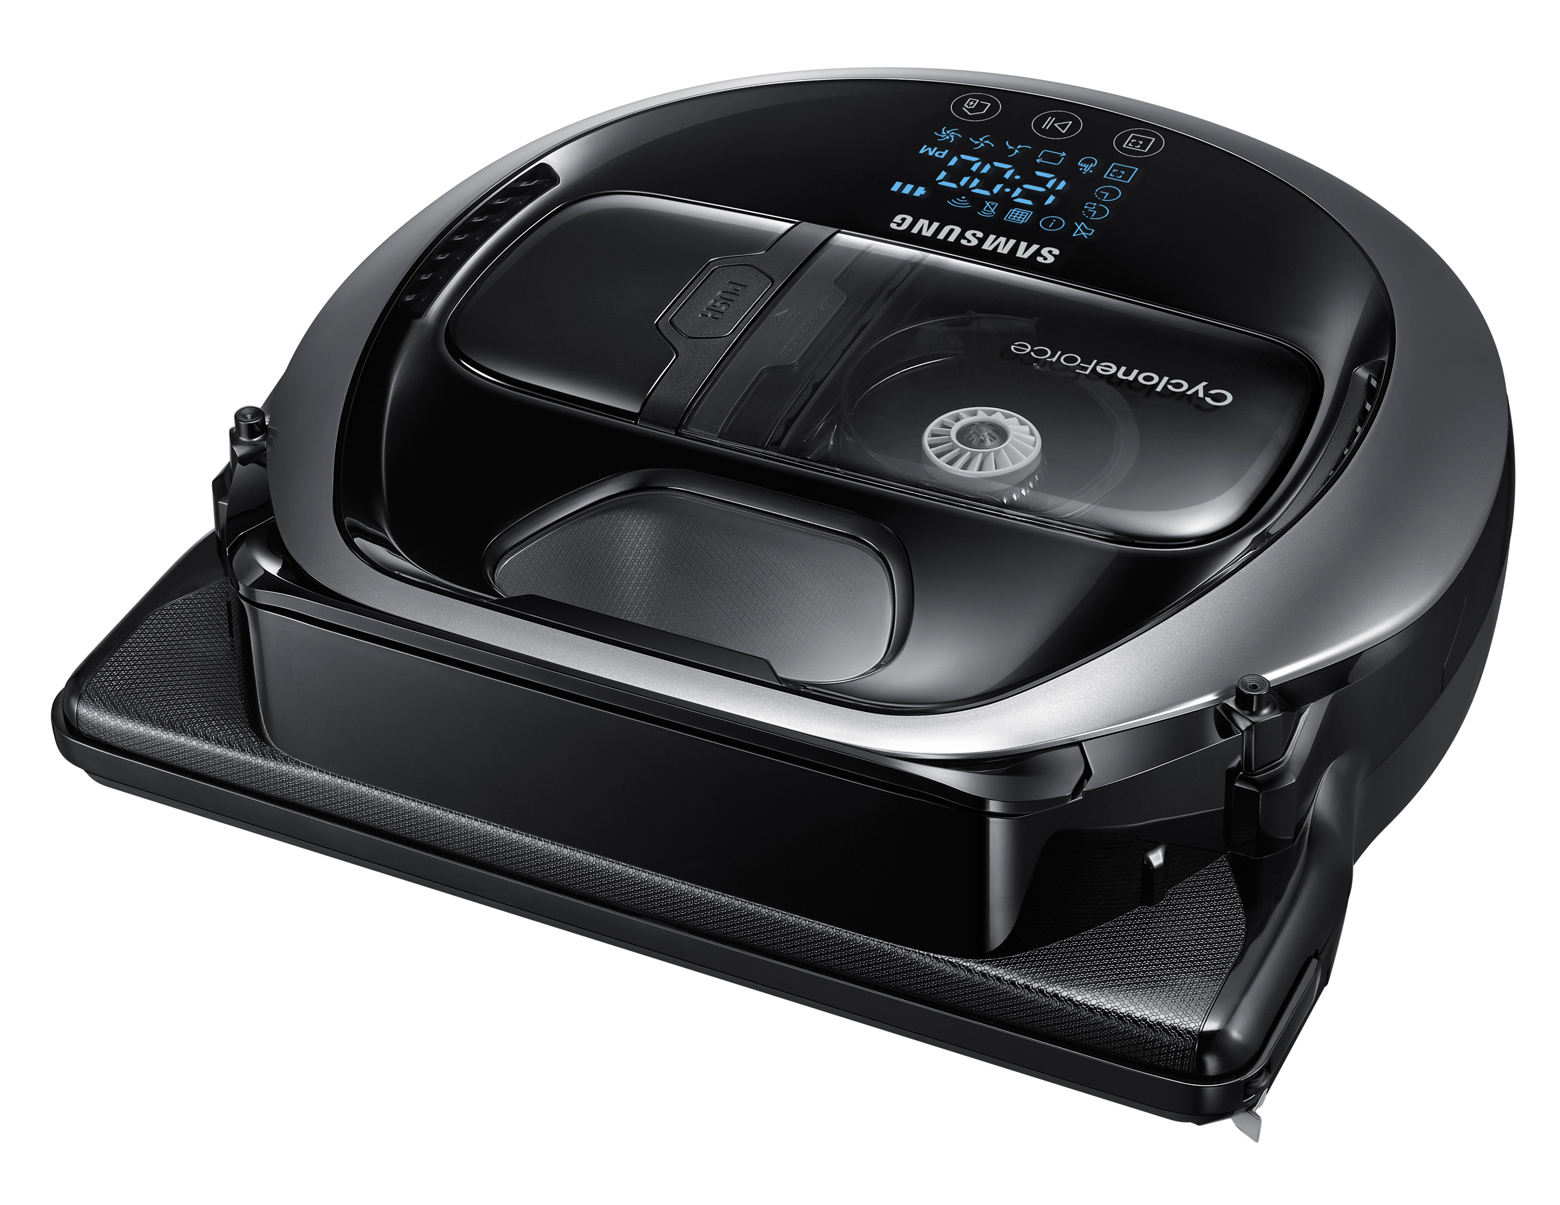 Samsung is bringing an Amazon Echo compatible robot vacuum to CES